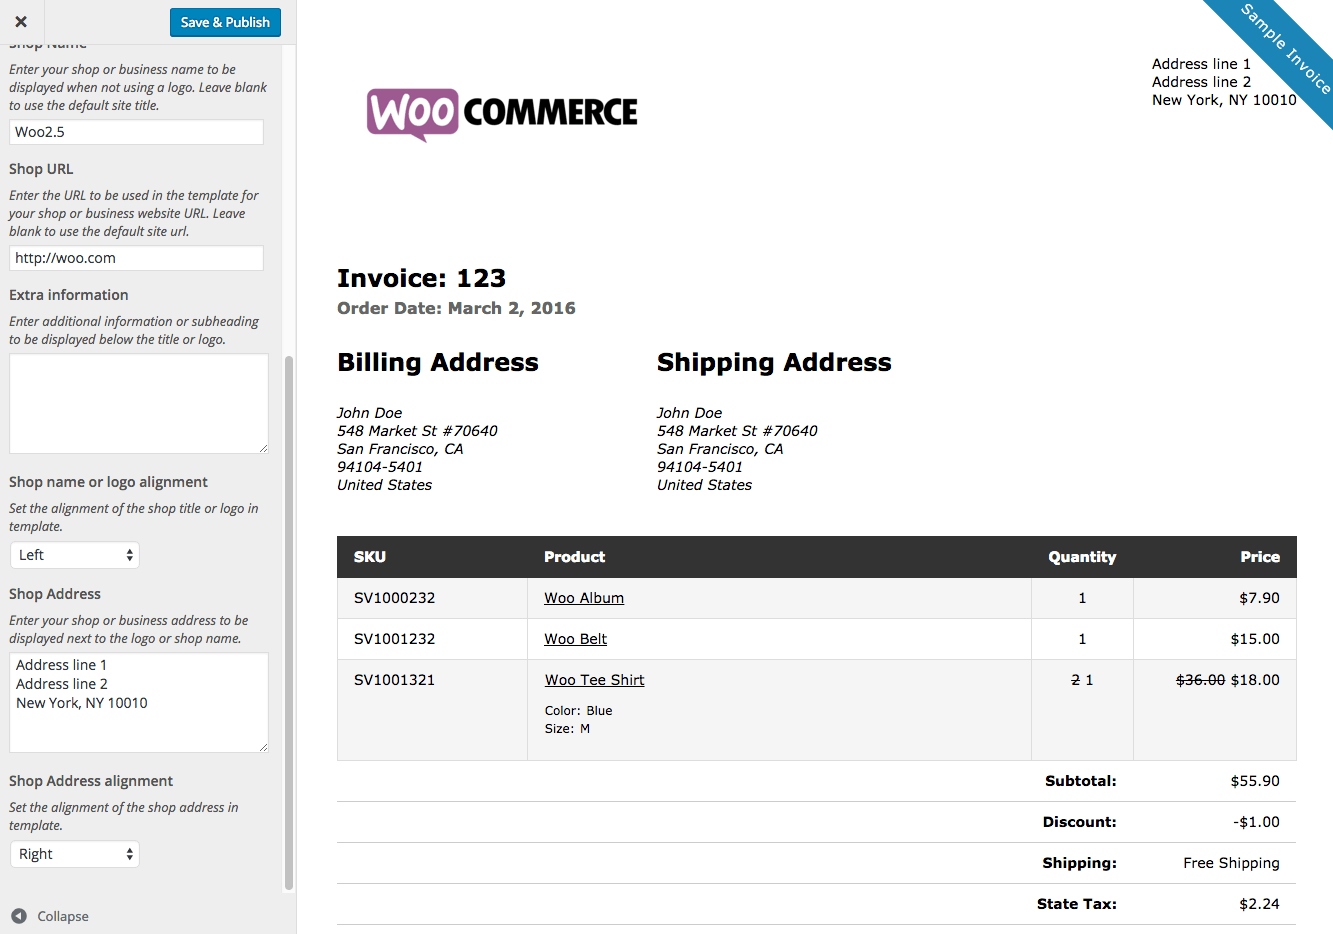 Usdgus  Remarkable Print Invoices Amp Packing Lists  Woocommerce With Inspiring Woocommerce Print Invoices  Packing Lists Customizer With Divine App Invoice Also Receipt Or Invoice In Addition Invoice In English And Service Invoice Format In Word As Well As Please Find Attached Our Invoice Additionally Raising An Invoice From Woocommercecom With Usdgus  Inspiring Print Invoices Amp Packing Lists  Woocommerce With Divine Woocommerce Print Invoices  Packing Lists Customizer And Remarkable App Invoice Also Receipt Or Invoice In Addition Invoice In English From Woocommercecom